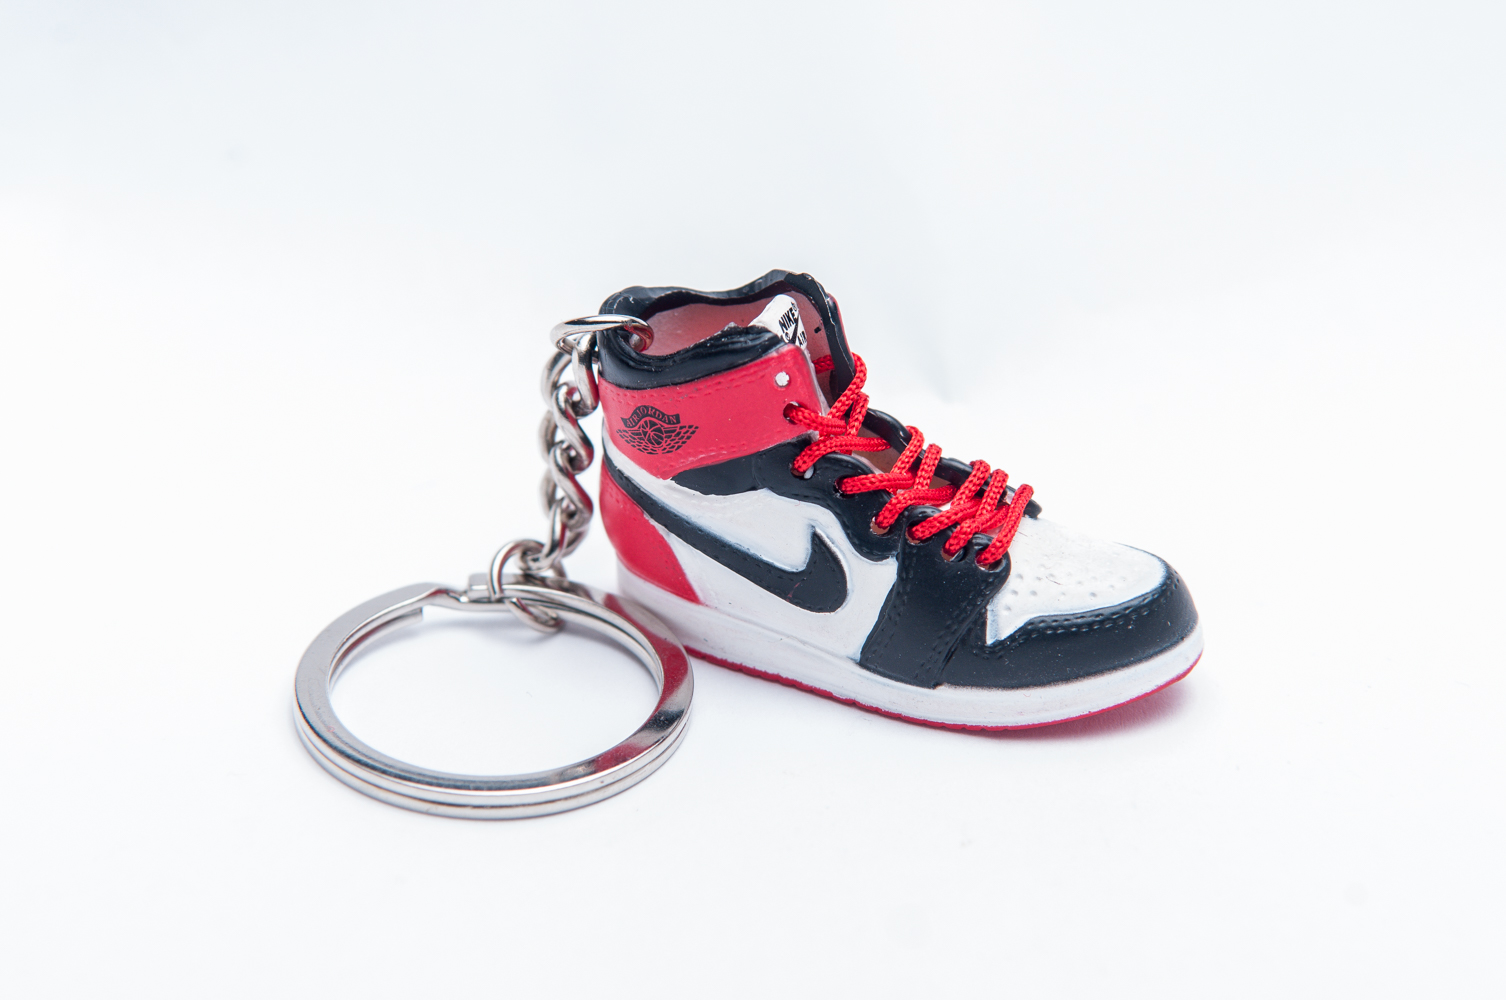 46684dc5f53 Nike Air Jordan 1 Retro Red Black 3D Keyring - Kool keyringsKool ...